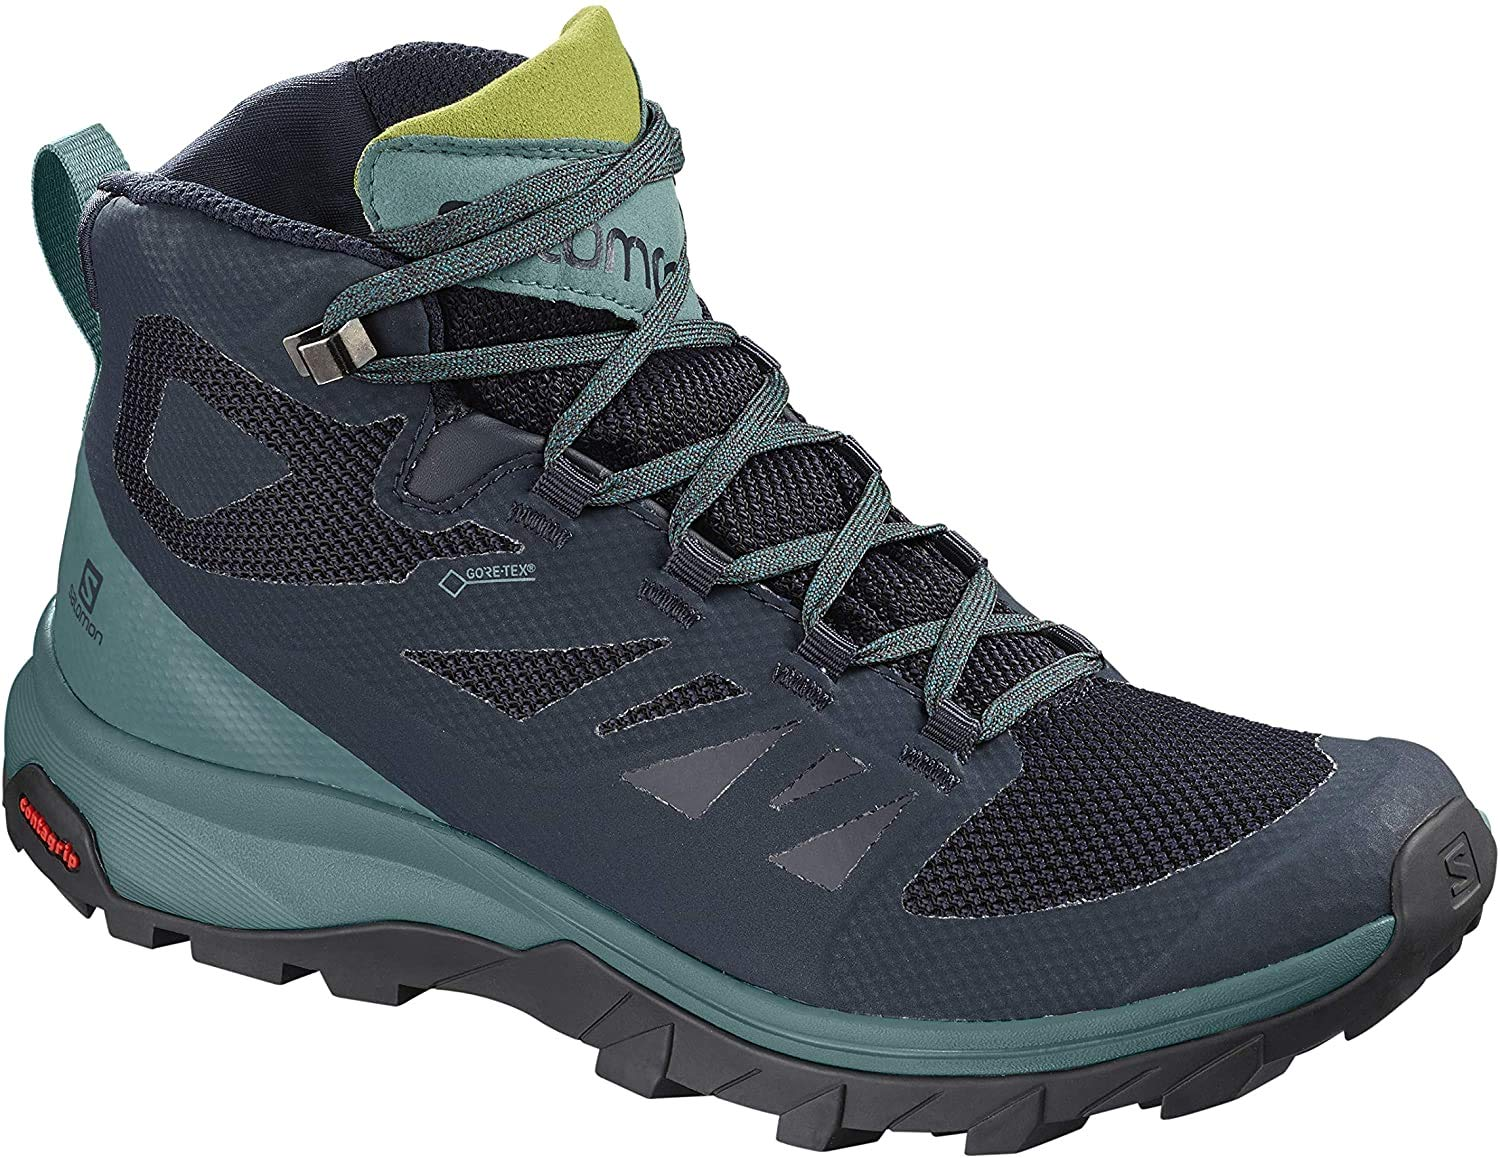 Salomon Women's OUTline Mid GTX W Hiking Boots